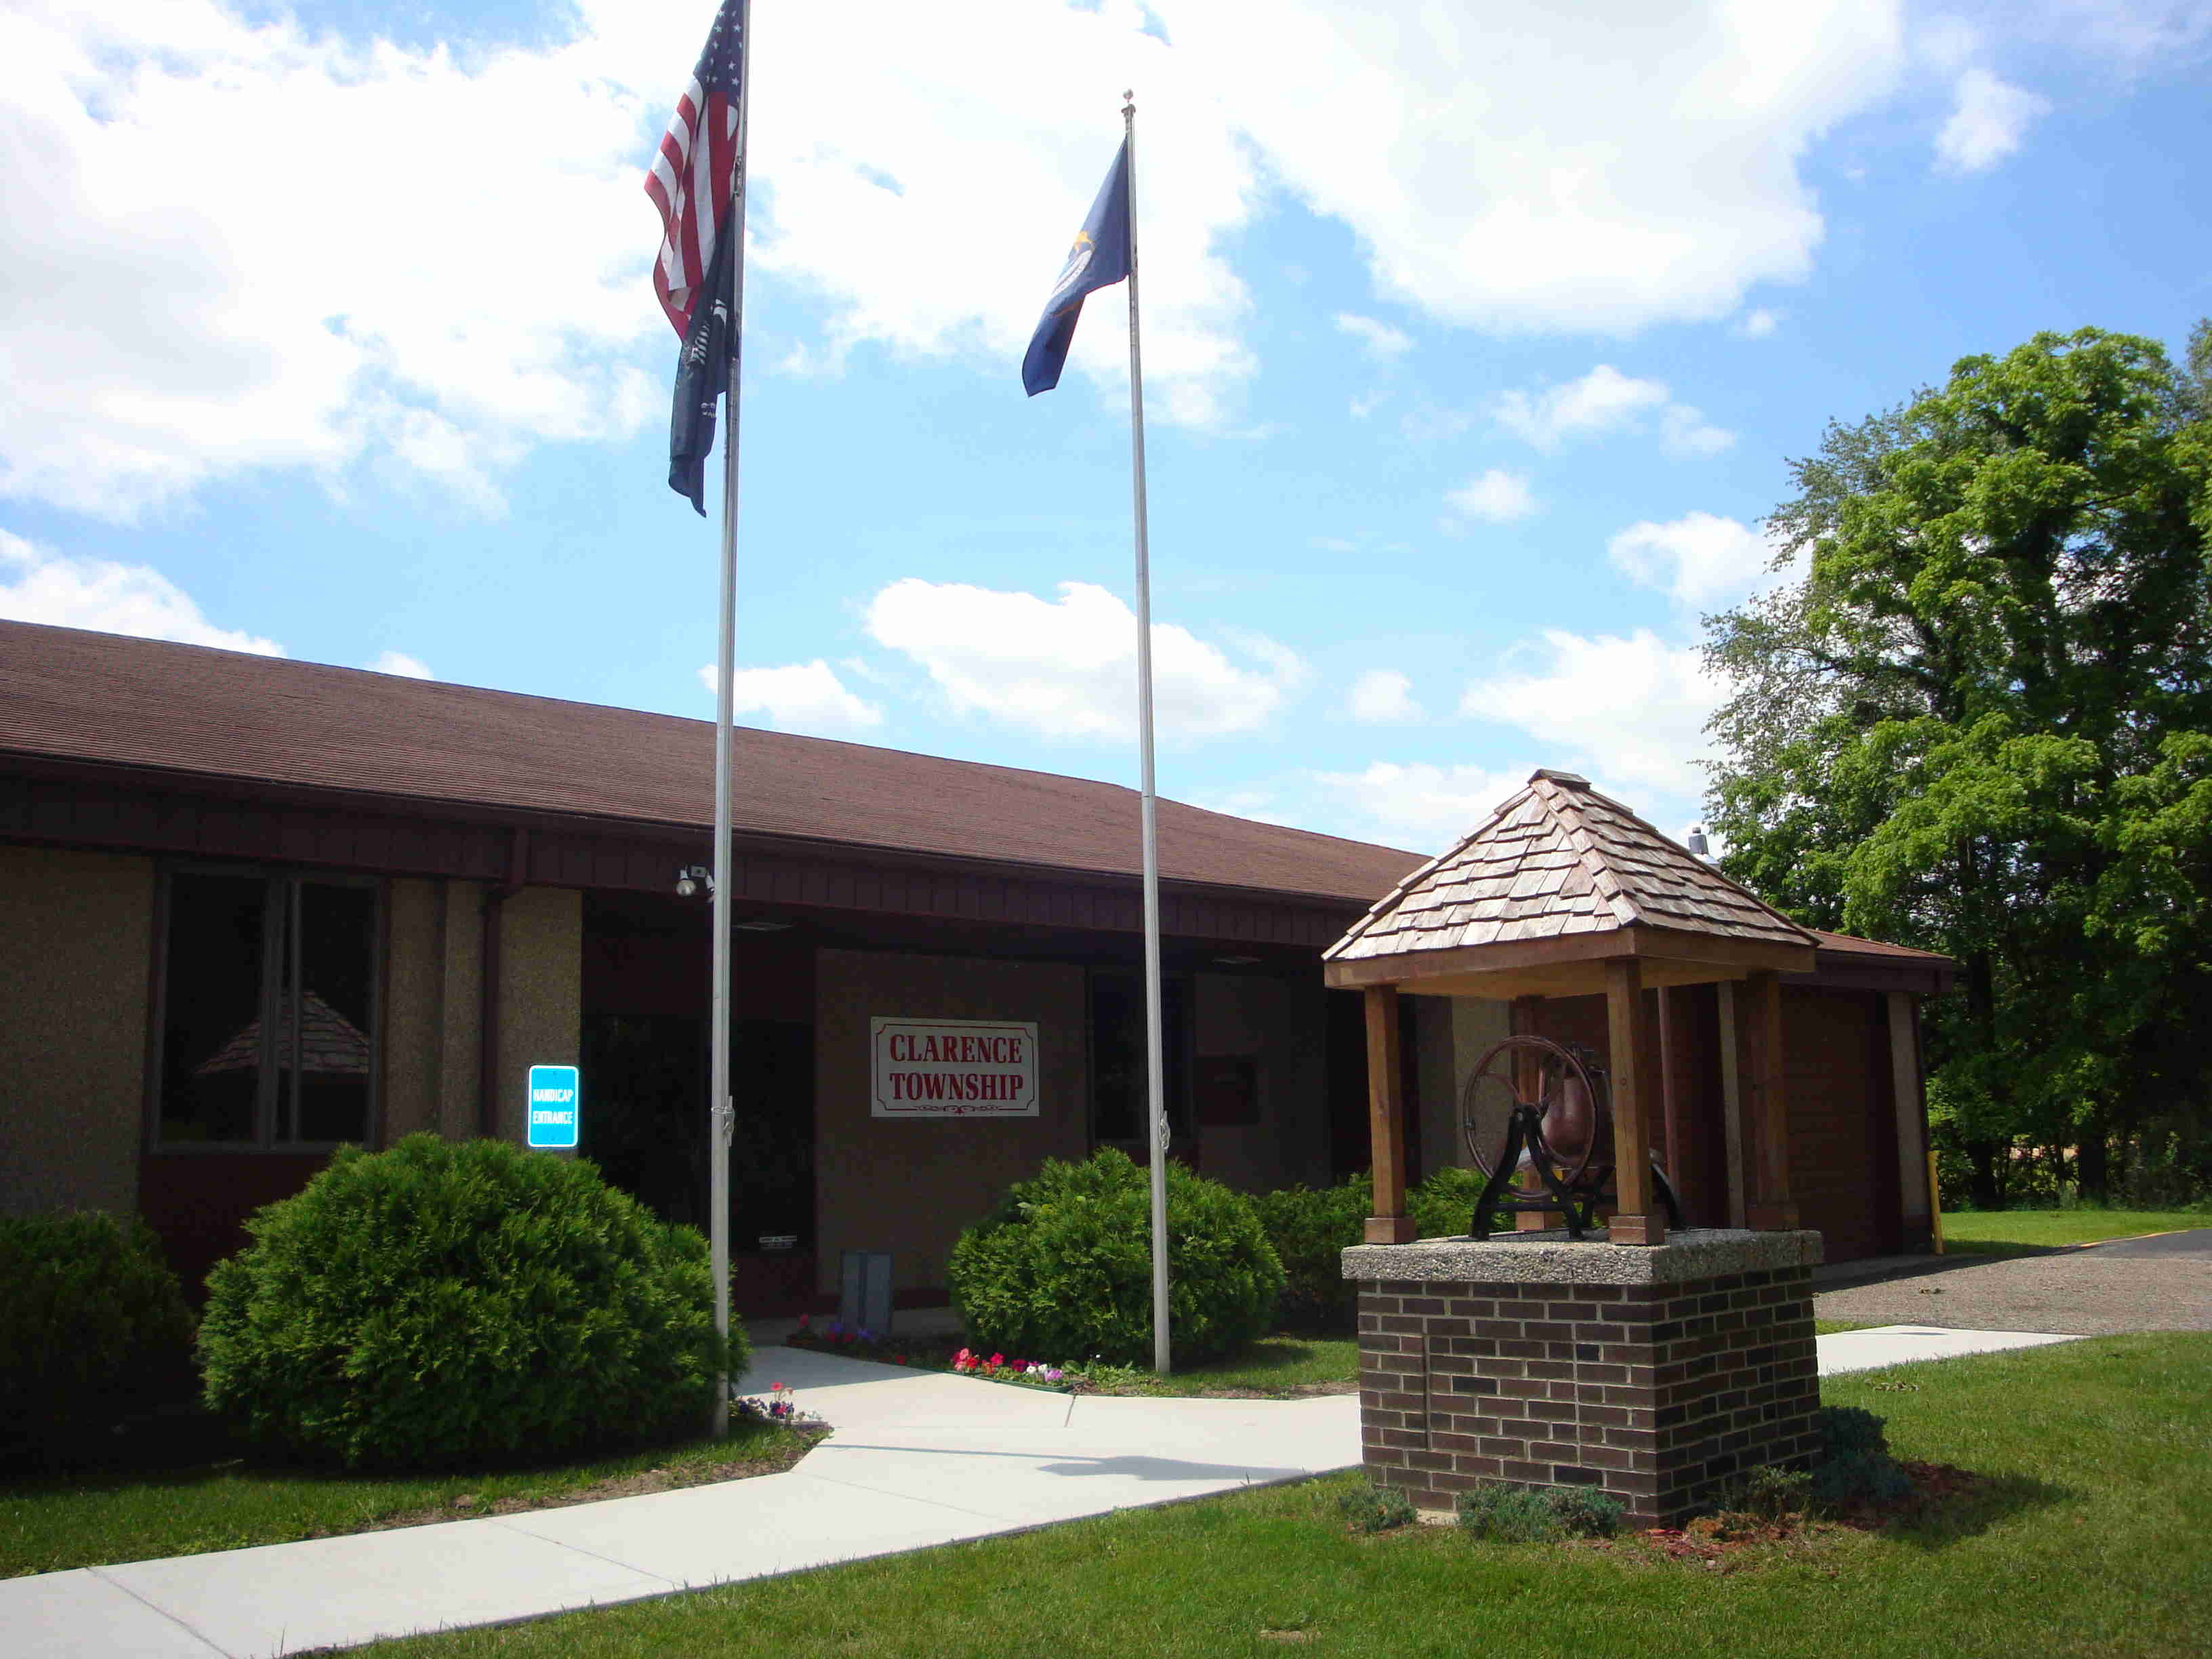 Clarence Township Hall